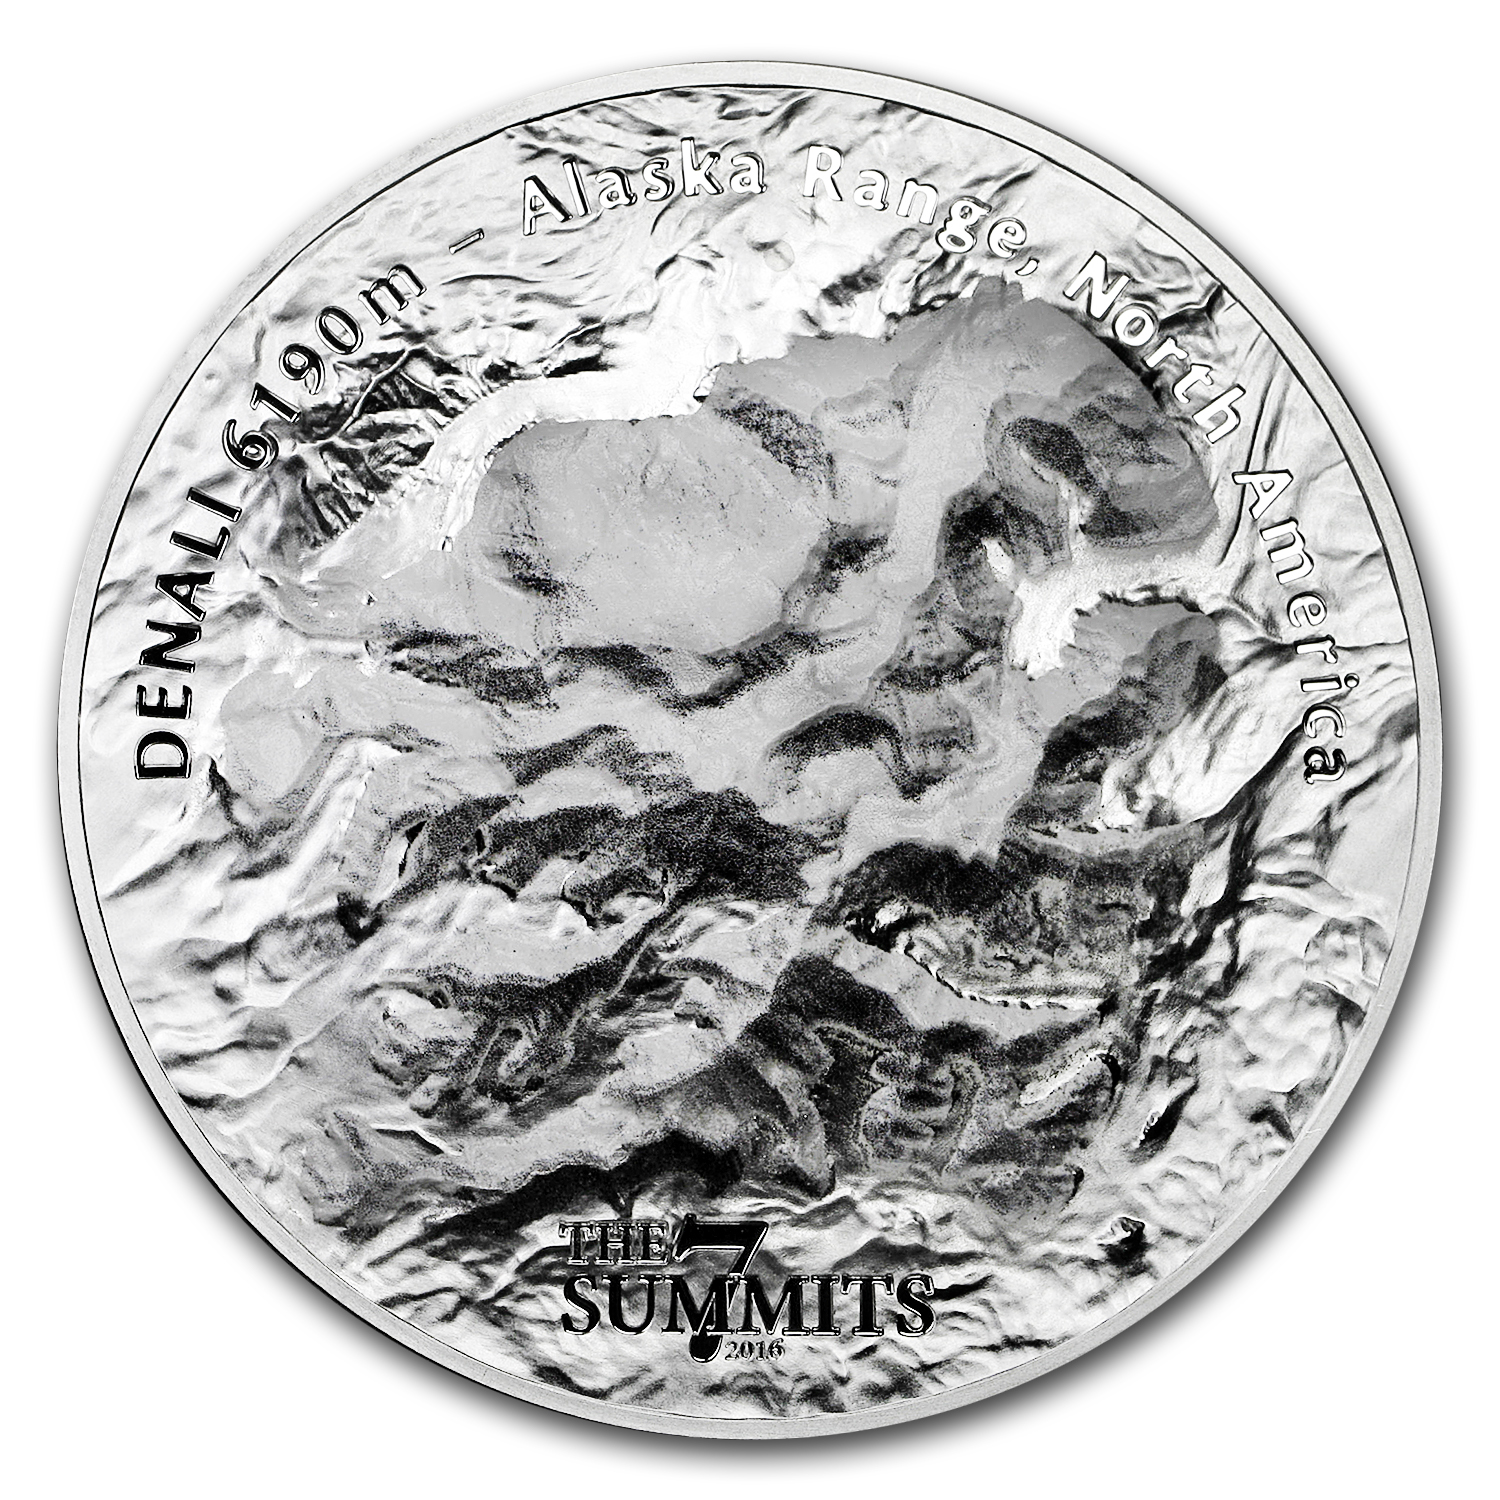 2016 Cook Islands 5 oz Silver 7 Summits (Denali)